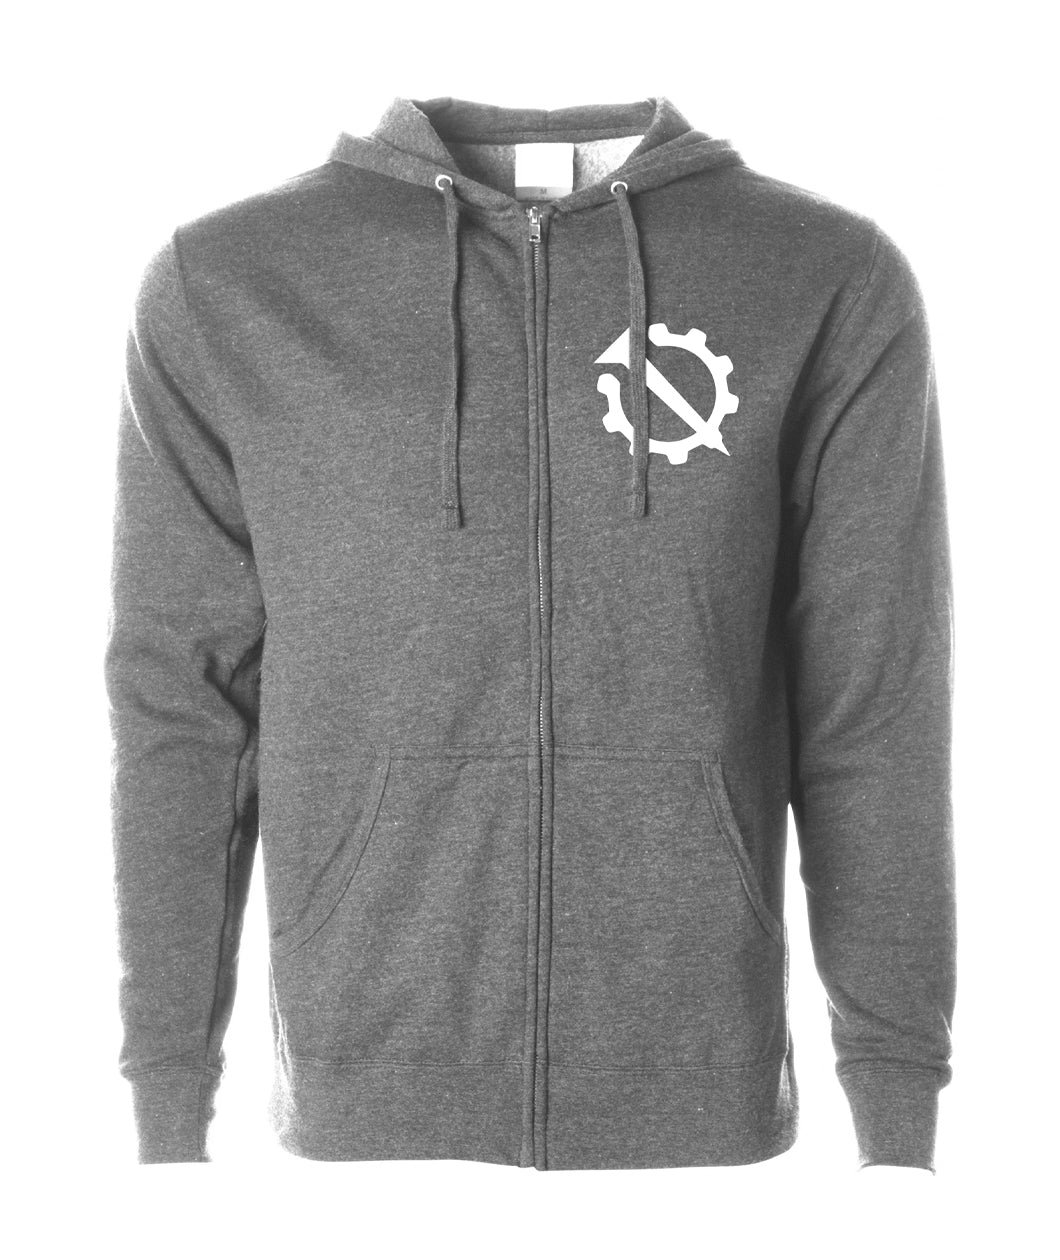 Nail and Gear Hoodie